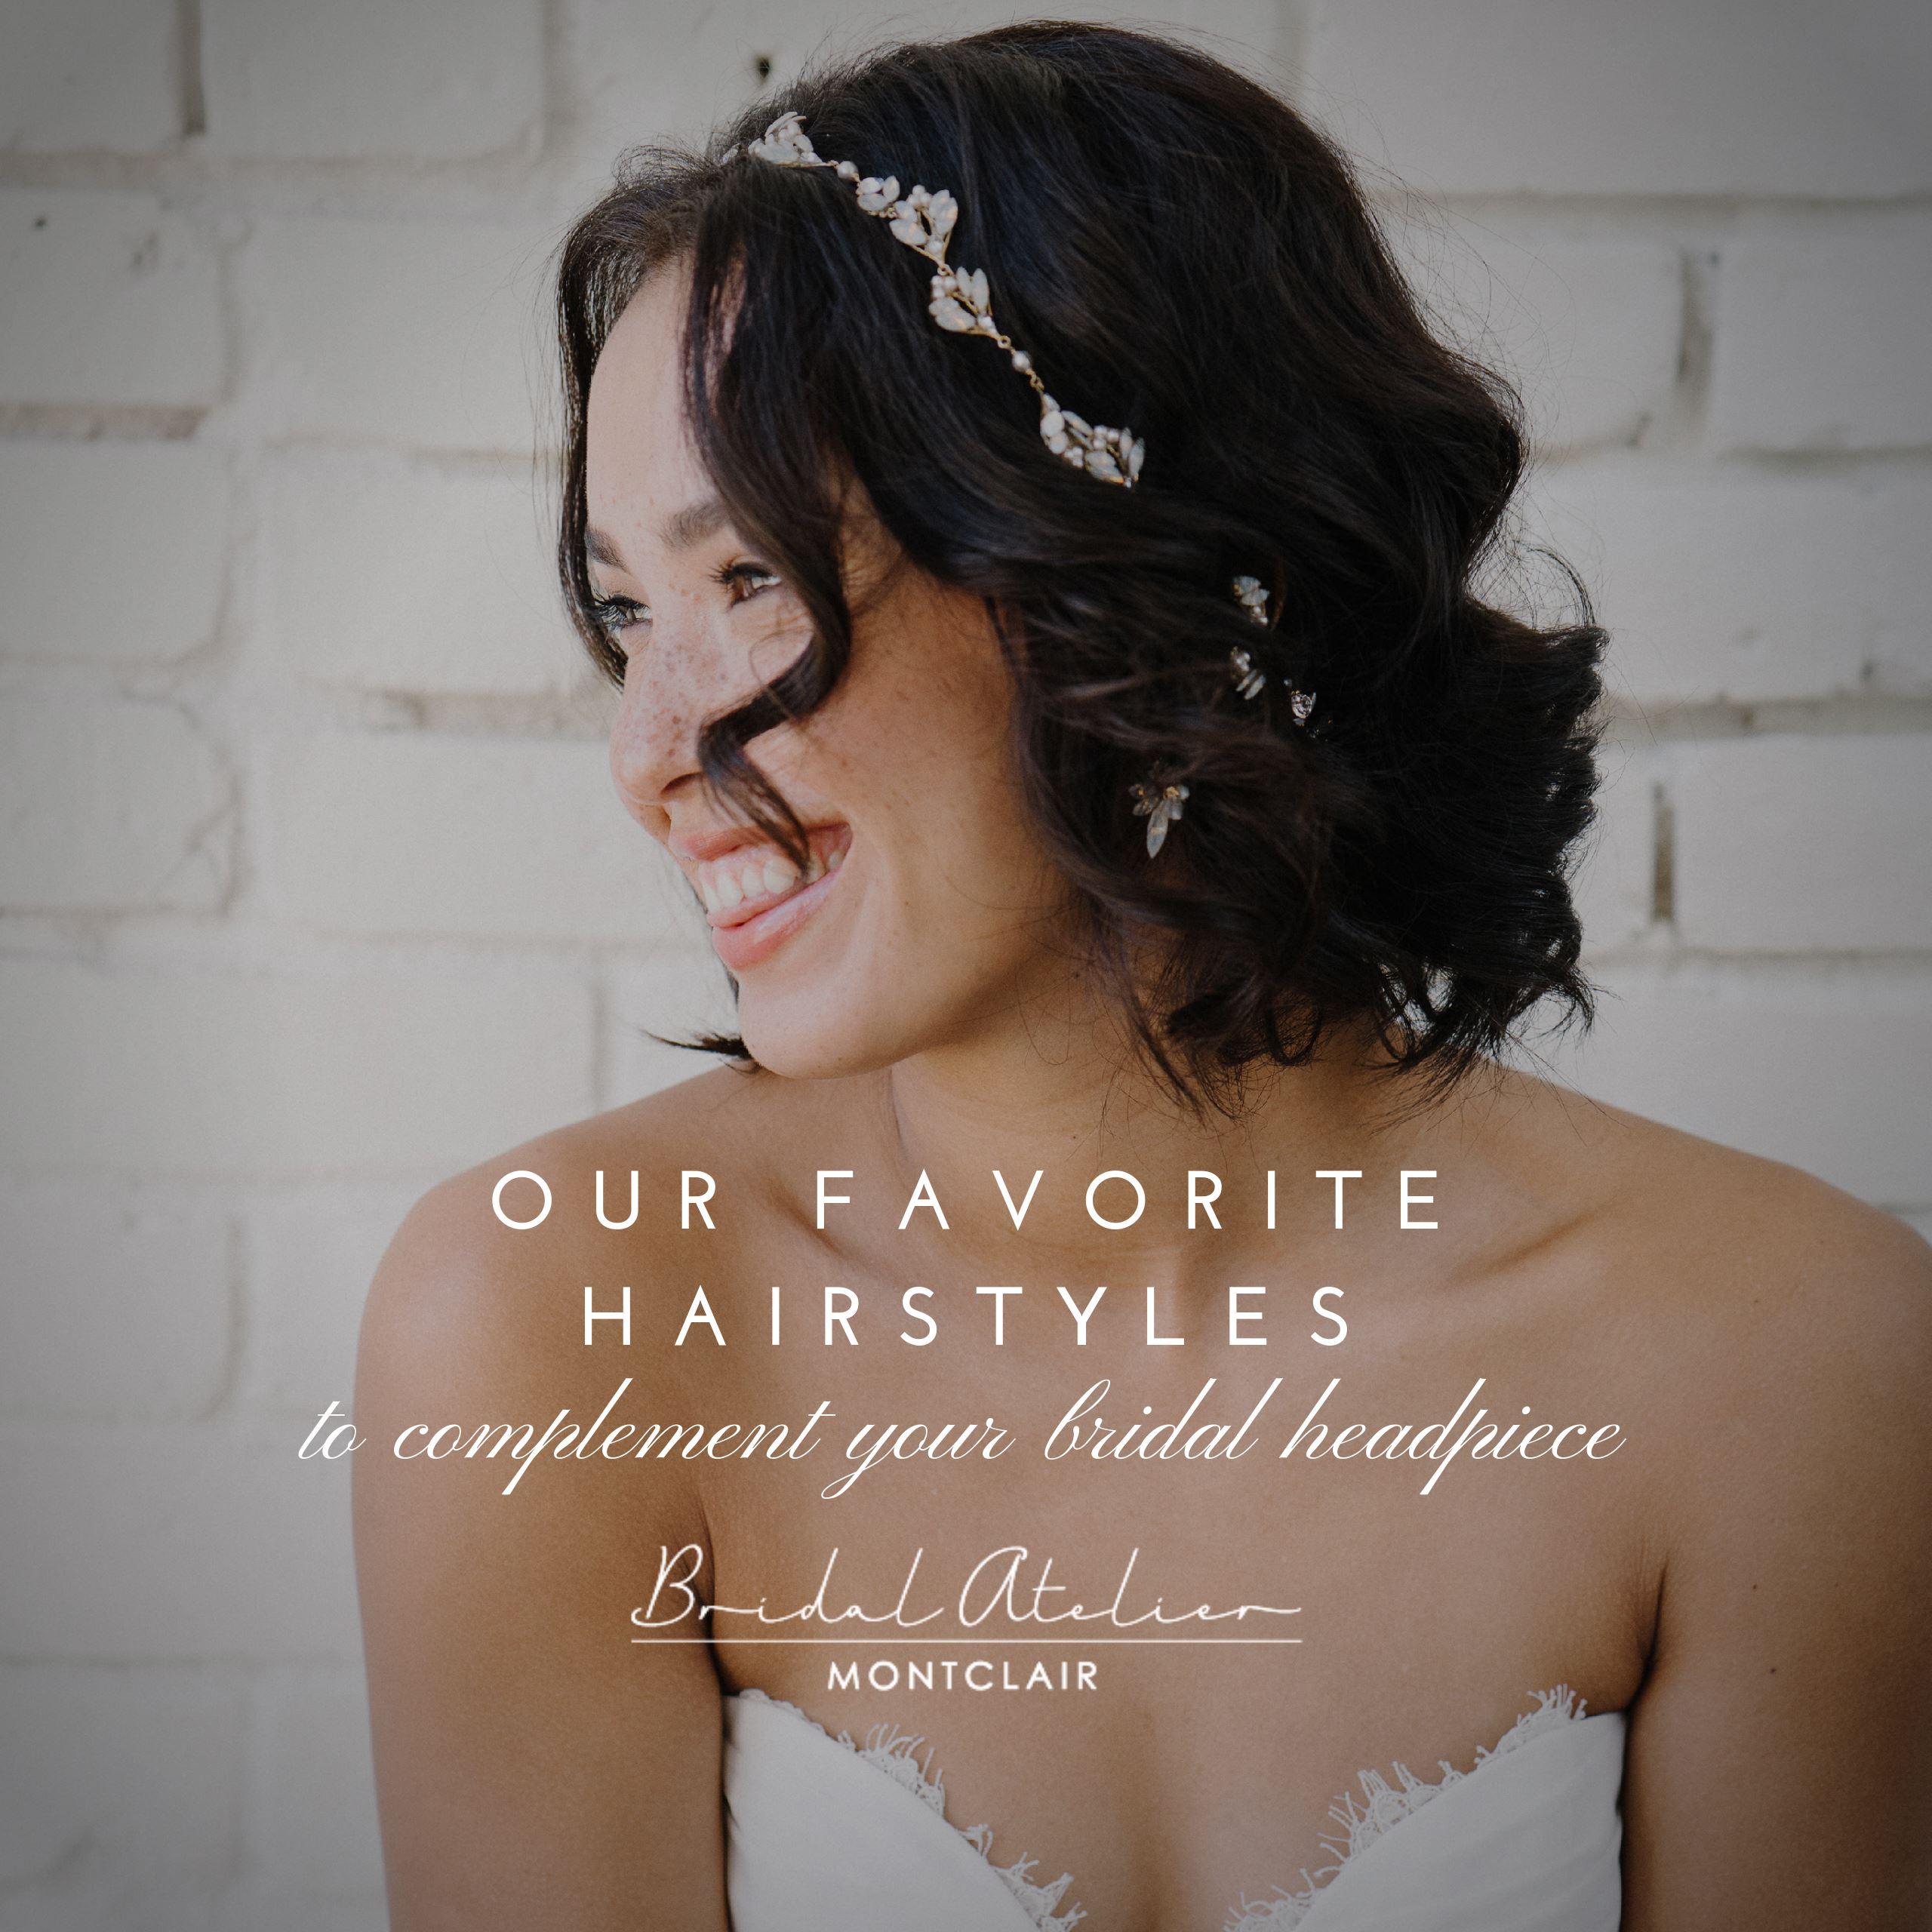 Our Favorite Hairstyles to Complement Your Bridal Headpiece. Desktop Image